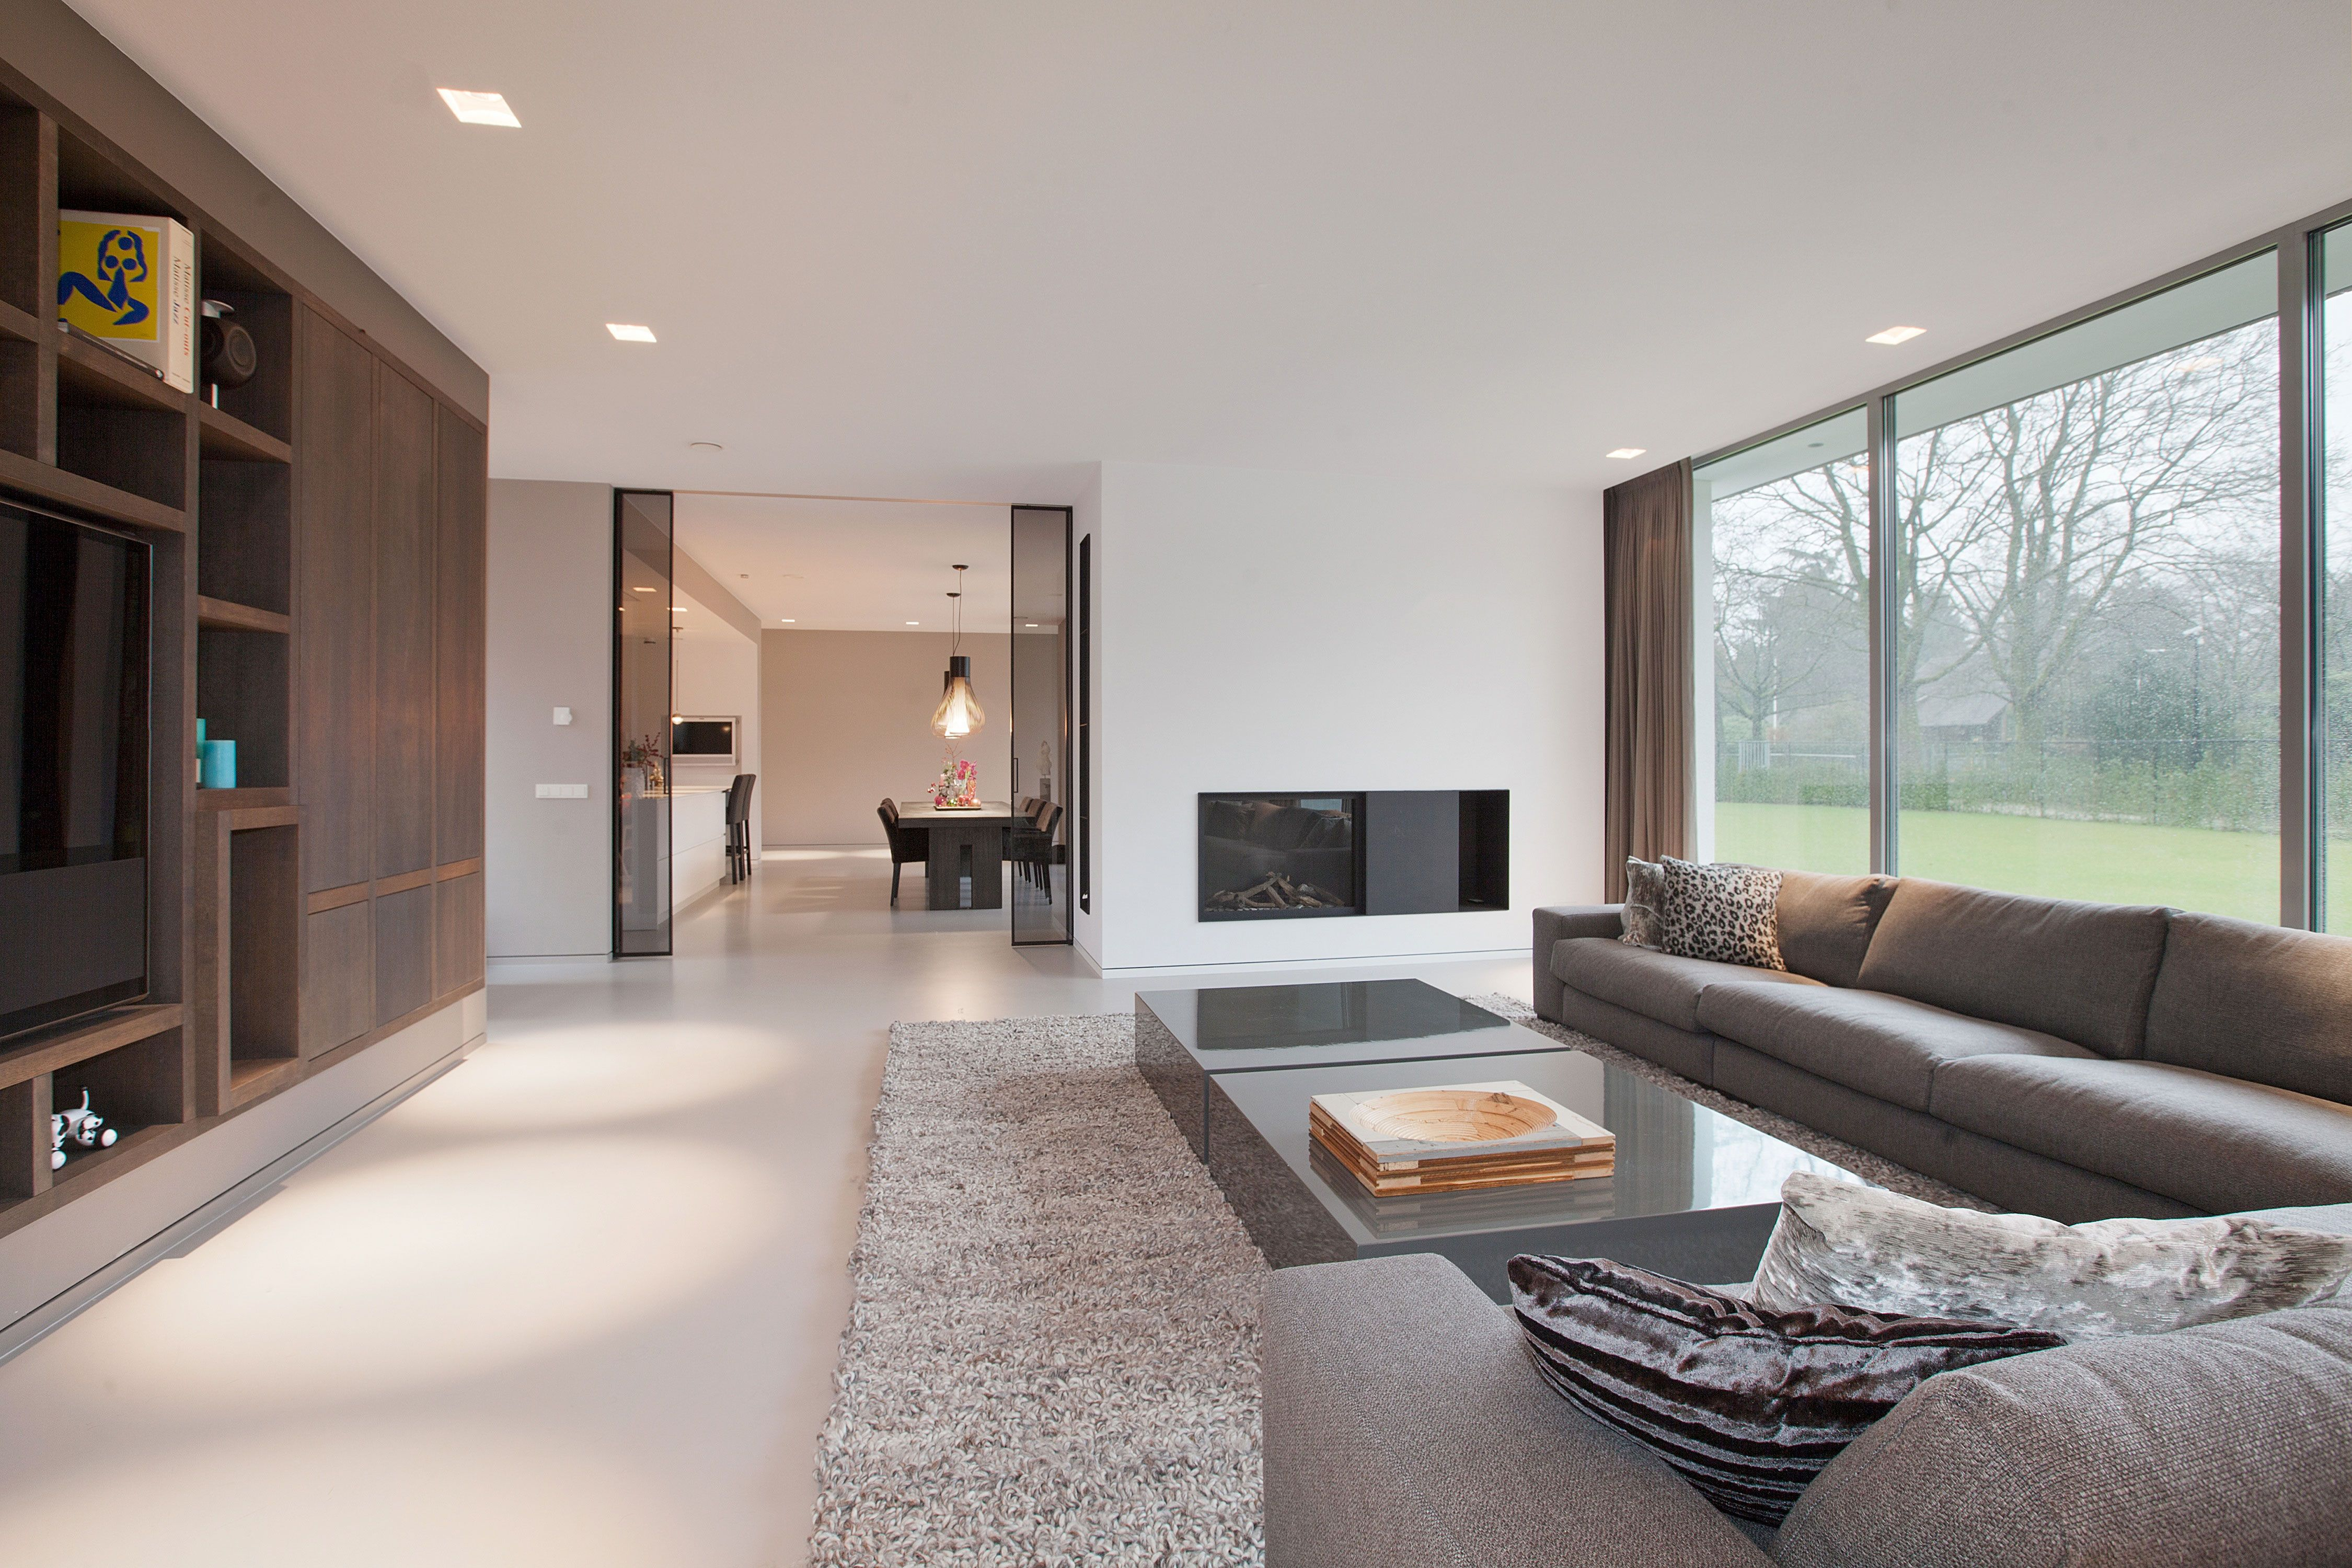 Strak Interieur Woonkamer Modern And Strak Interieur En Design Meiling Interieur